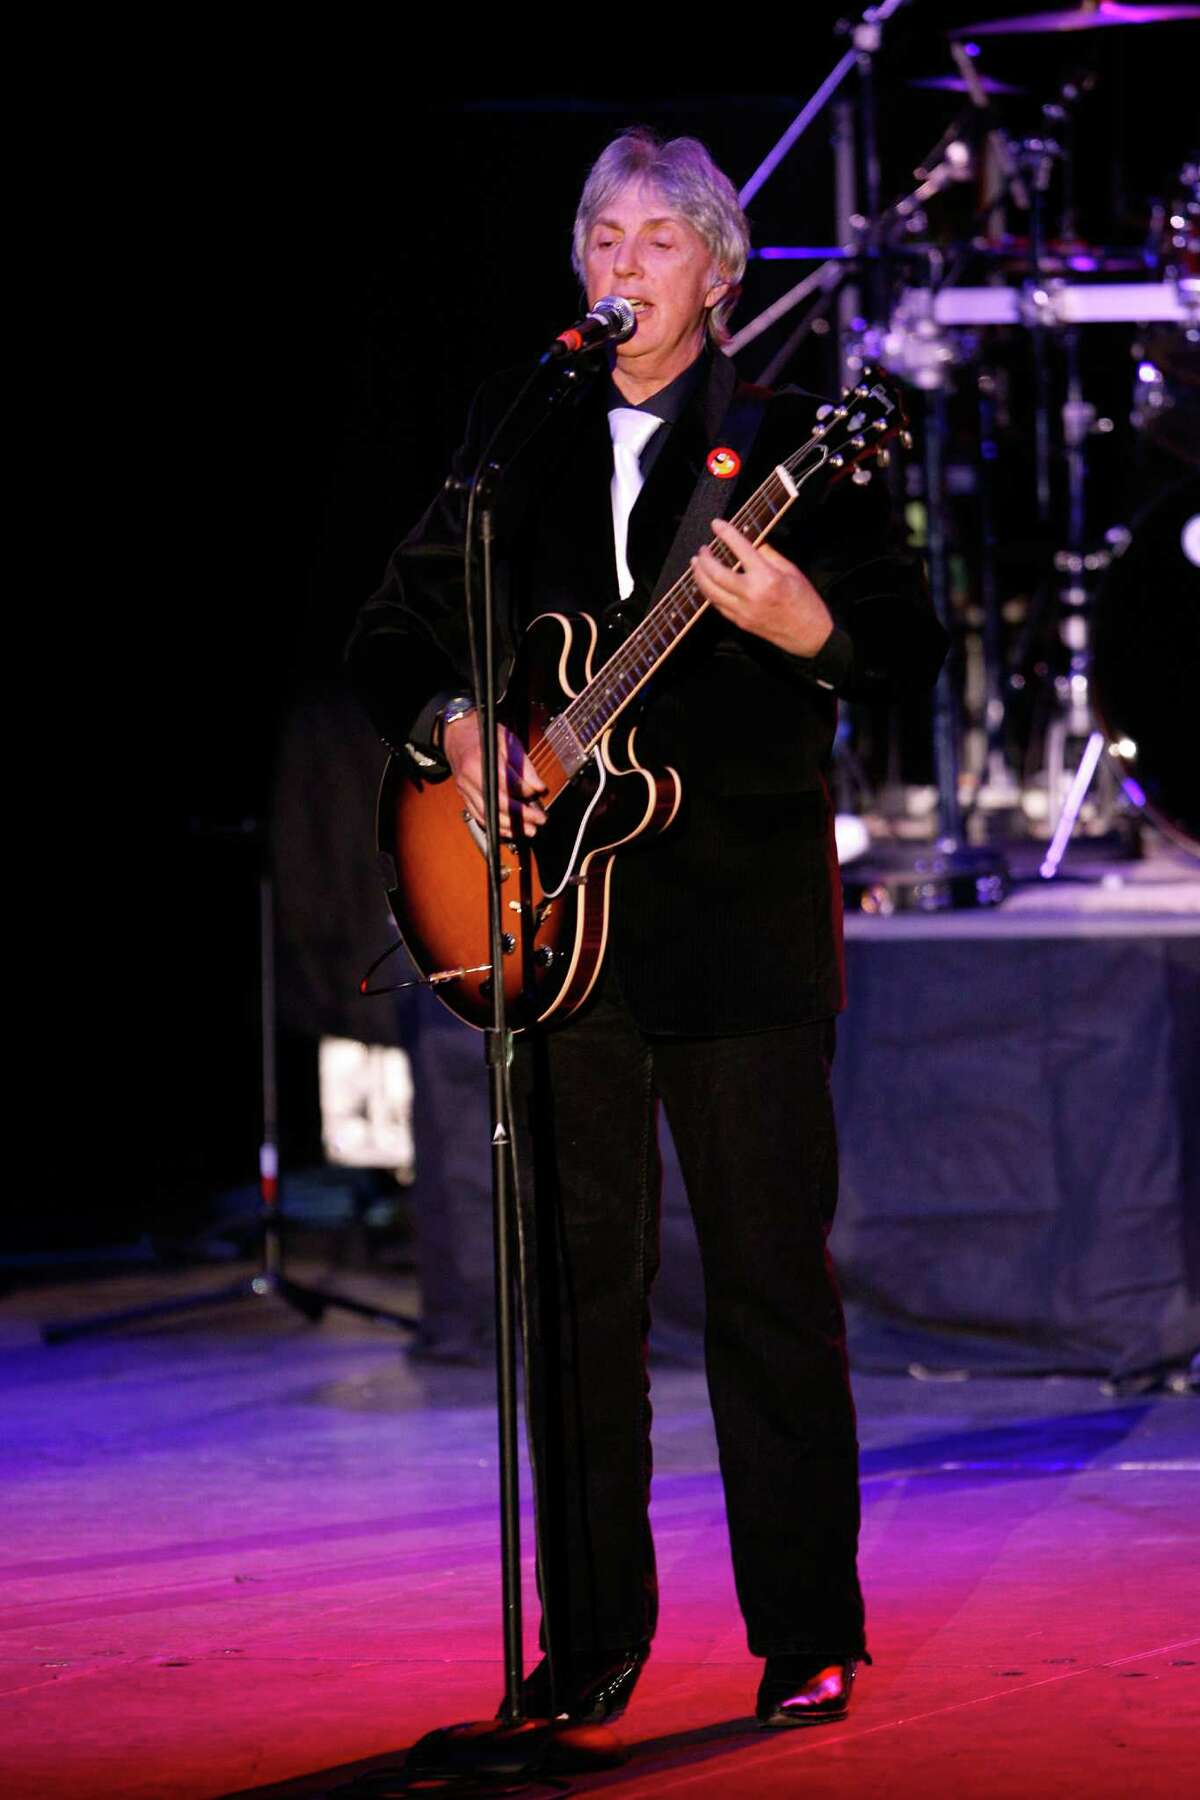 This Dec. 6, 2008 photo provided by Three Dog Night shows singer-musician, Cory Wells, performing on stage with Three Dog Night at Primm Valley Resort, in Primm, Nevada. Wells, a founding member of the popular 1970s band Three Dog Night. Wells died at age 74 on Oct. 20, 2015. (Jerry Gallegos/Three Dog Night via AP)